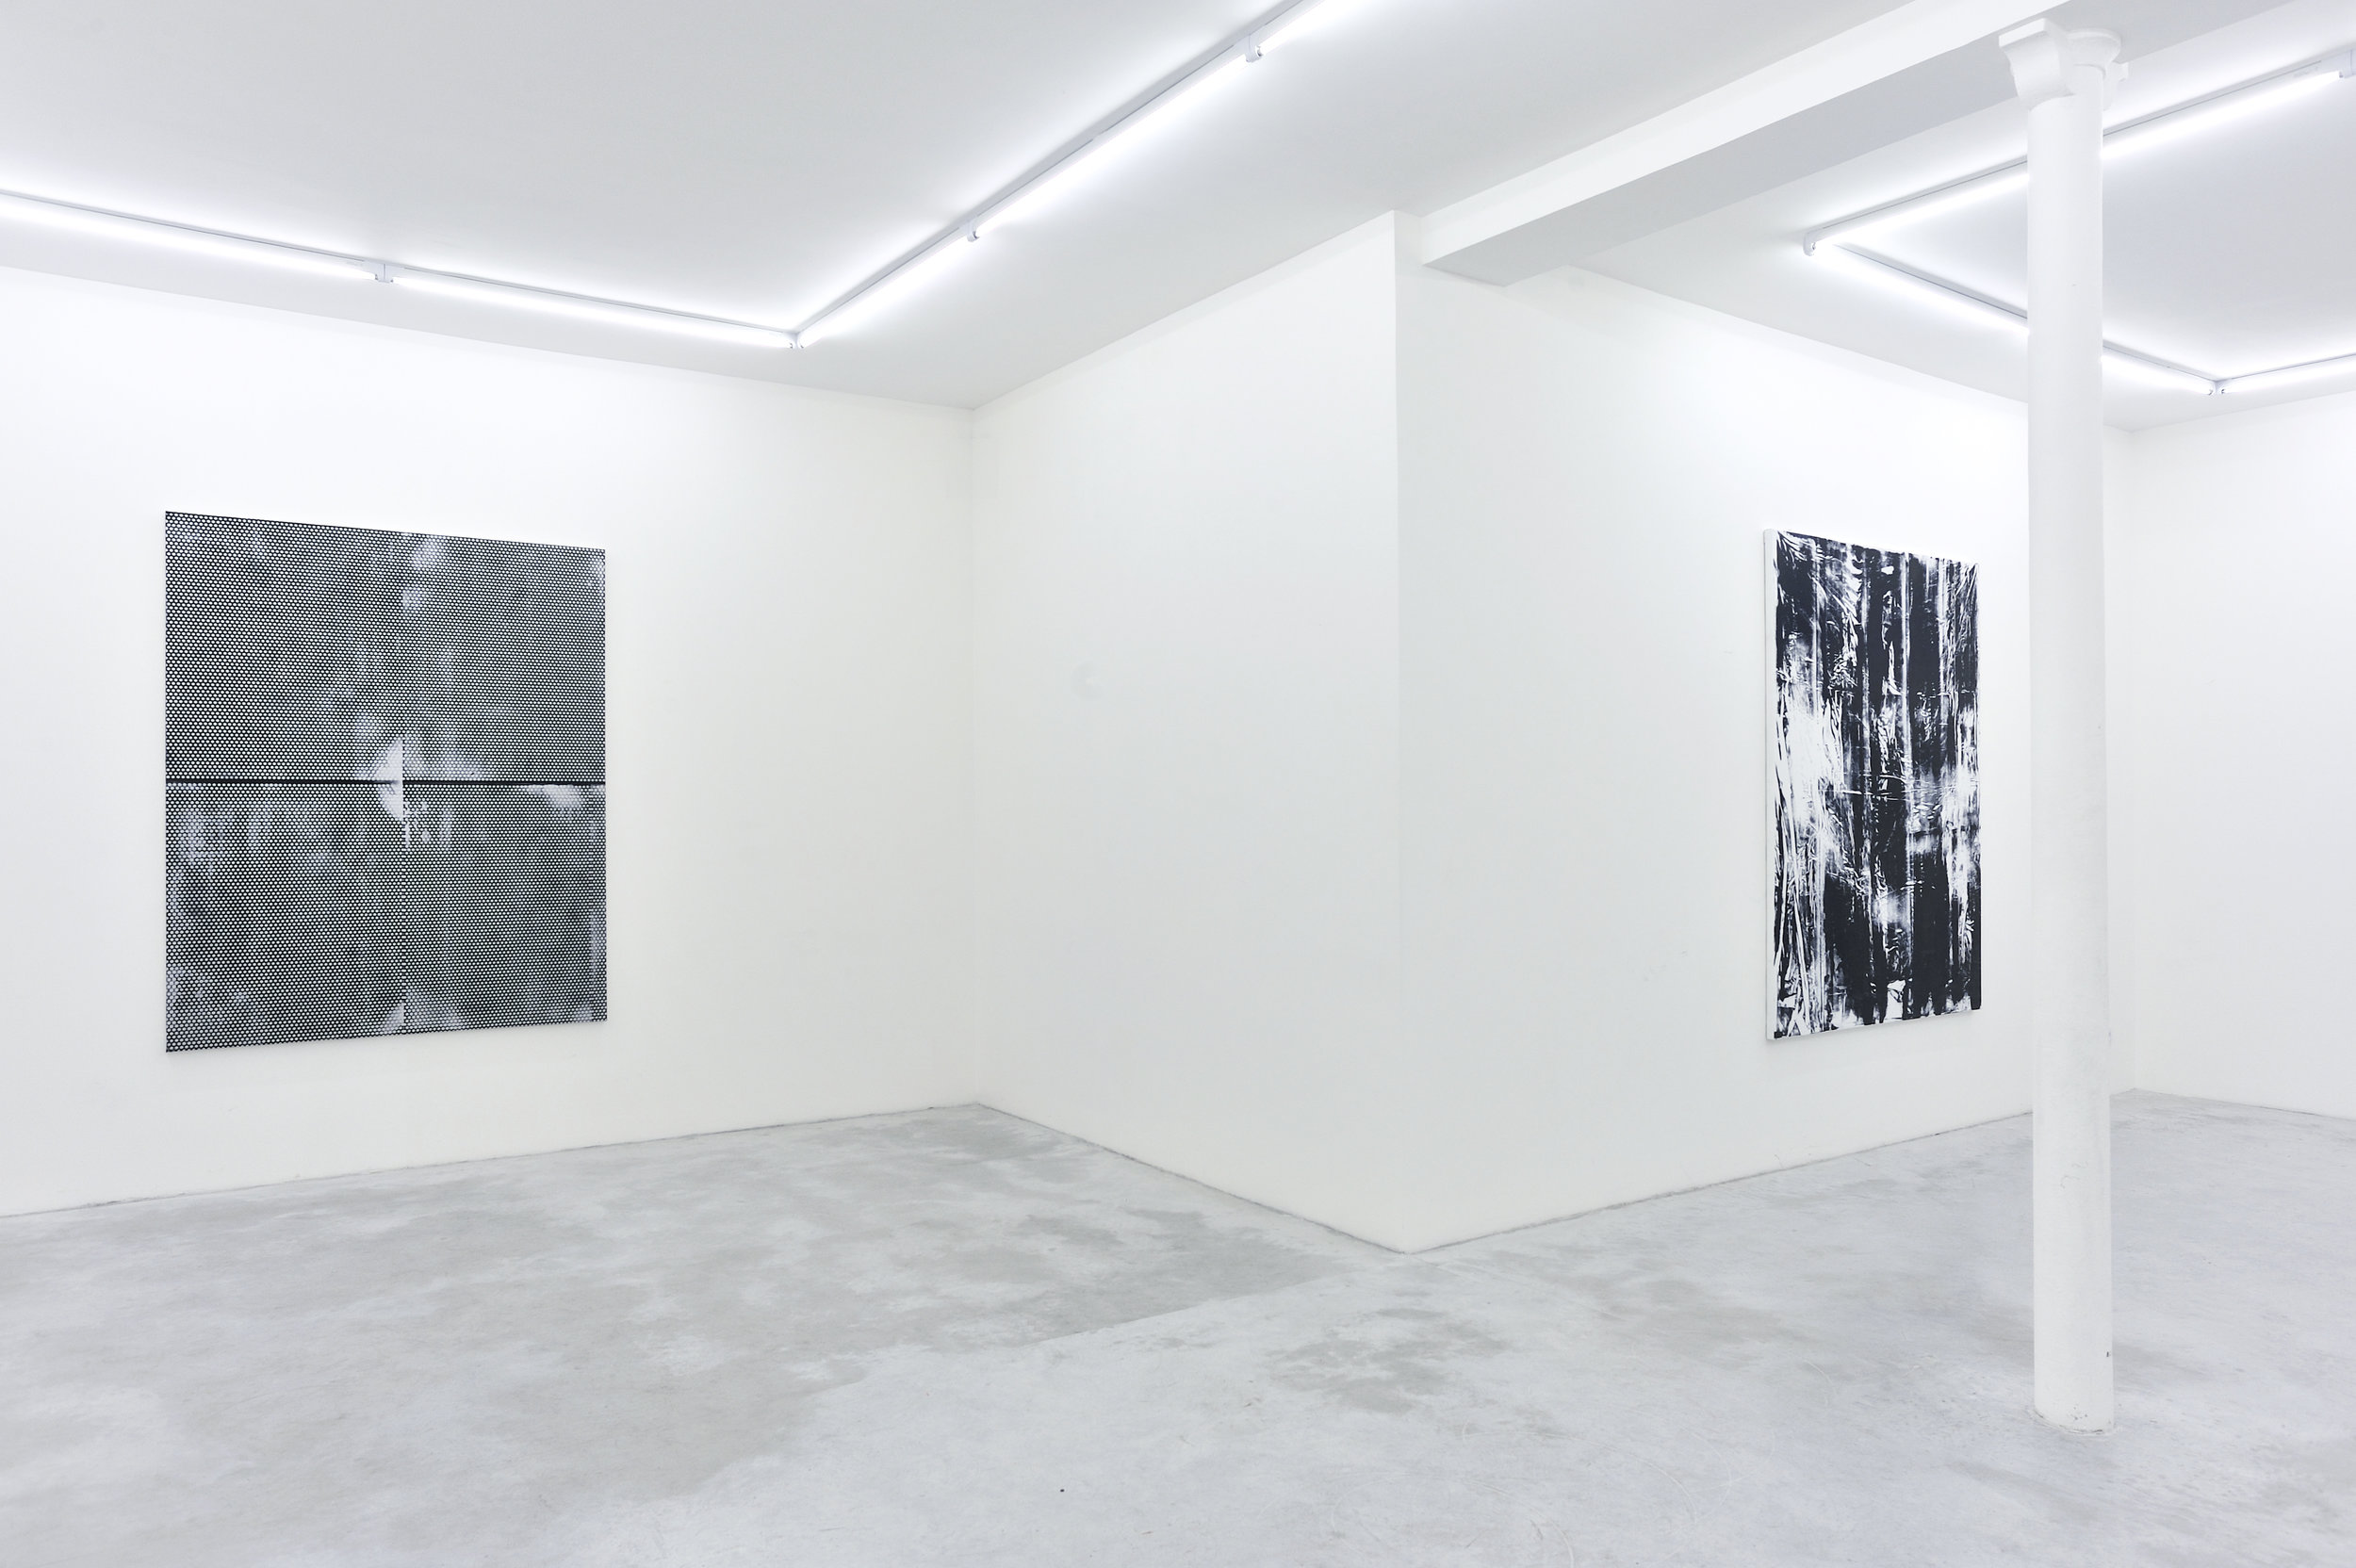 Thomas Fougeirol   Black Sun   Installation view at Praz-Delavallade  Paris, FR  April 2 - May 7, 2011